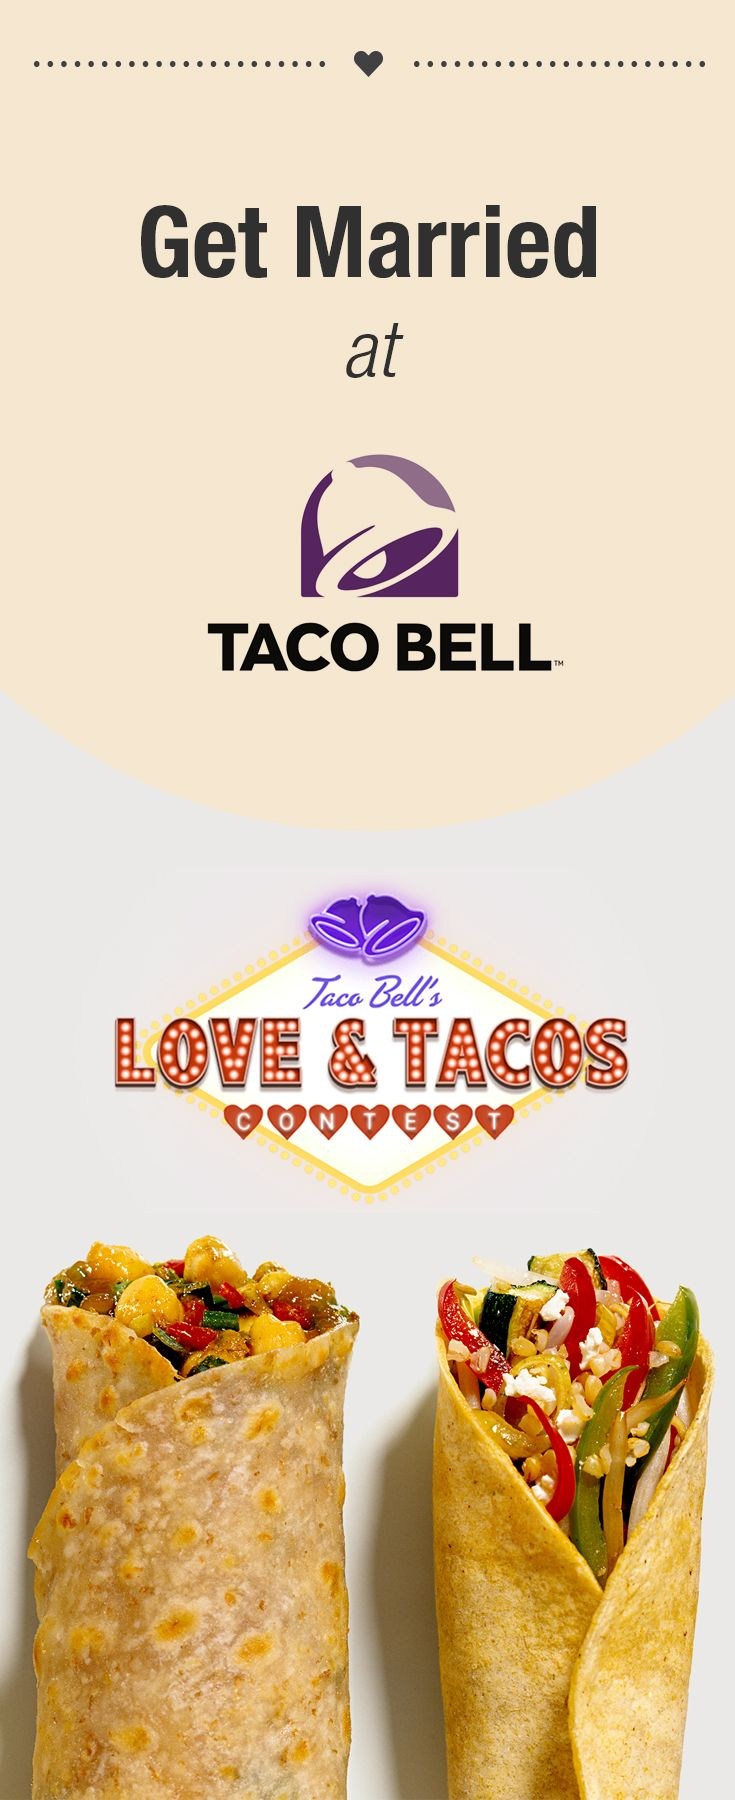 You Can Now Get Married at Taco Bell. The chain recently announced that they will be the first to add wedding ceremonies to the menu.